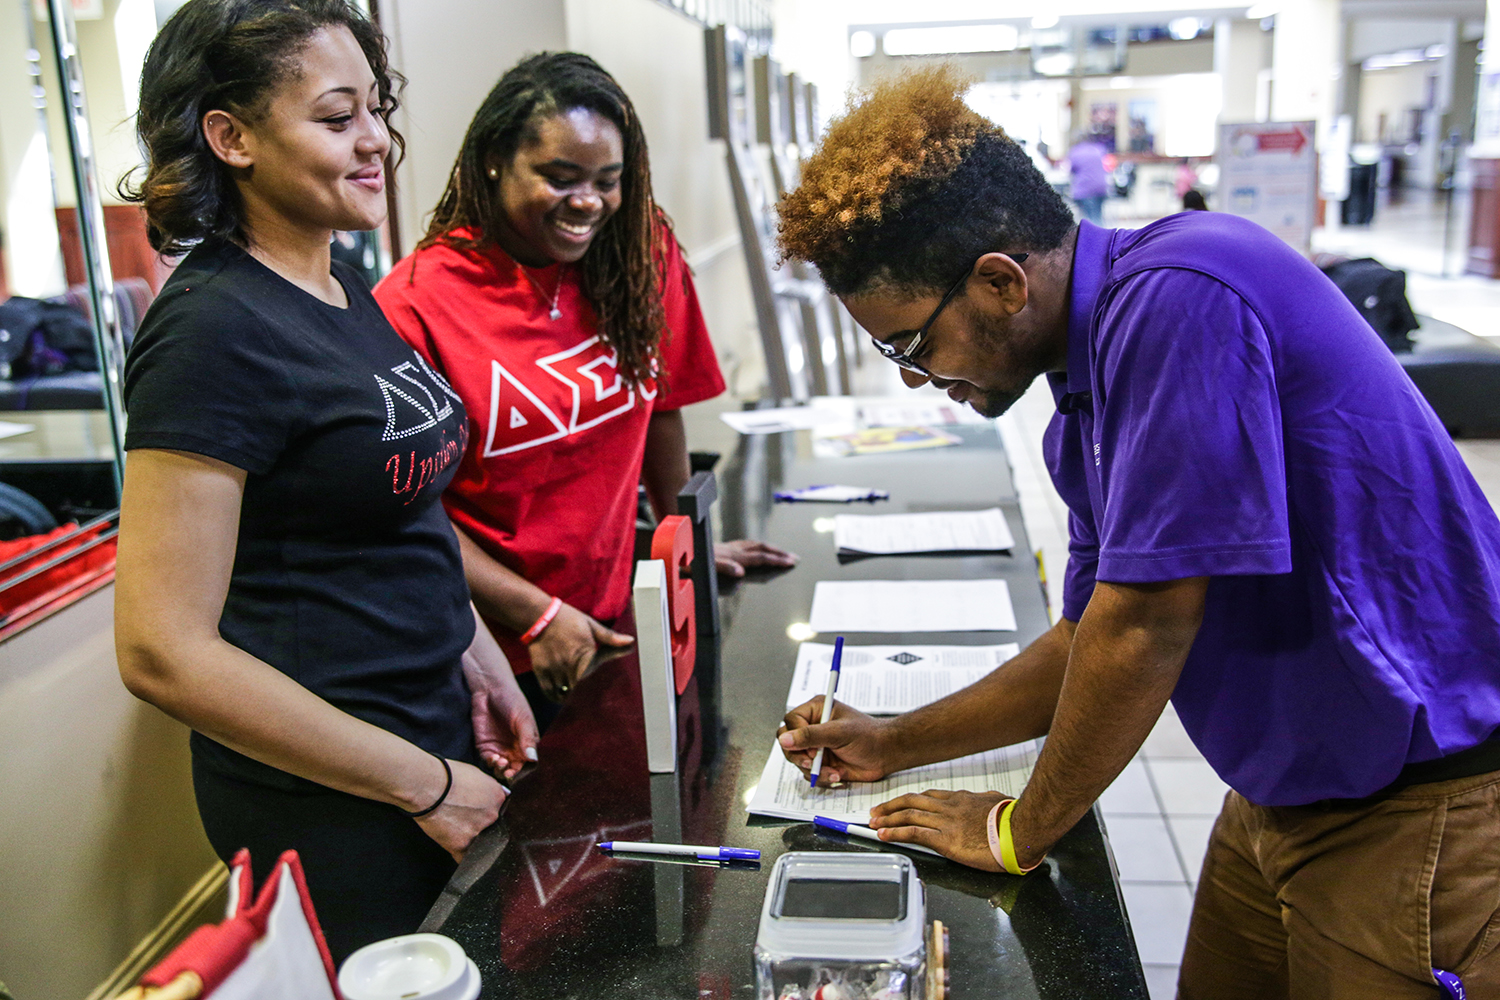 HPU's Delta Sigma Theta chapter held a voter registration drive in the Slane Student Center.